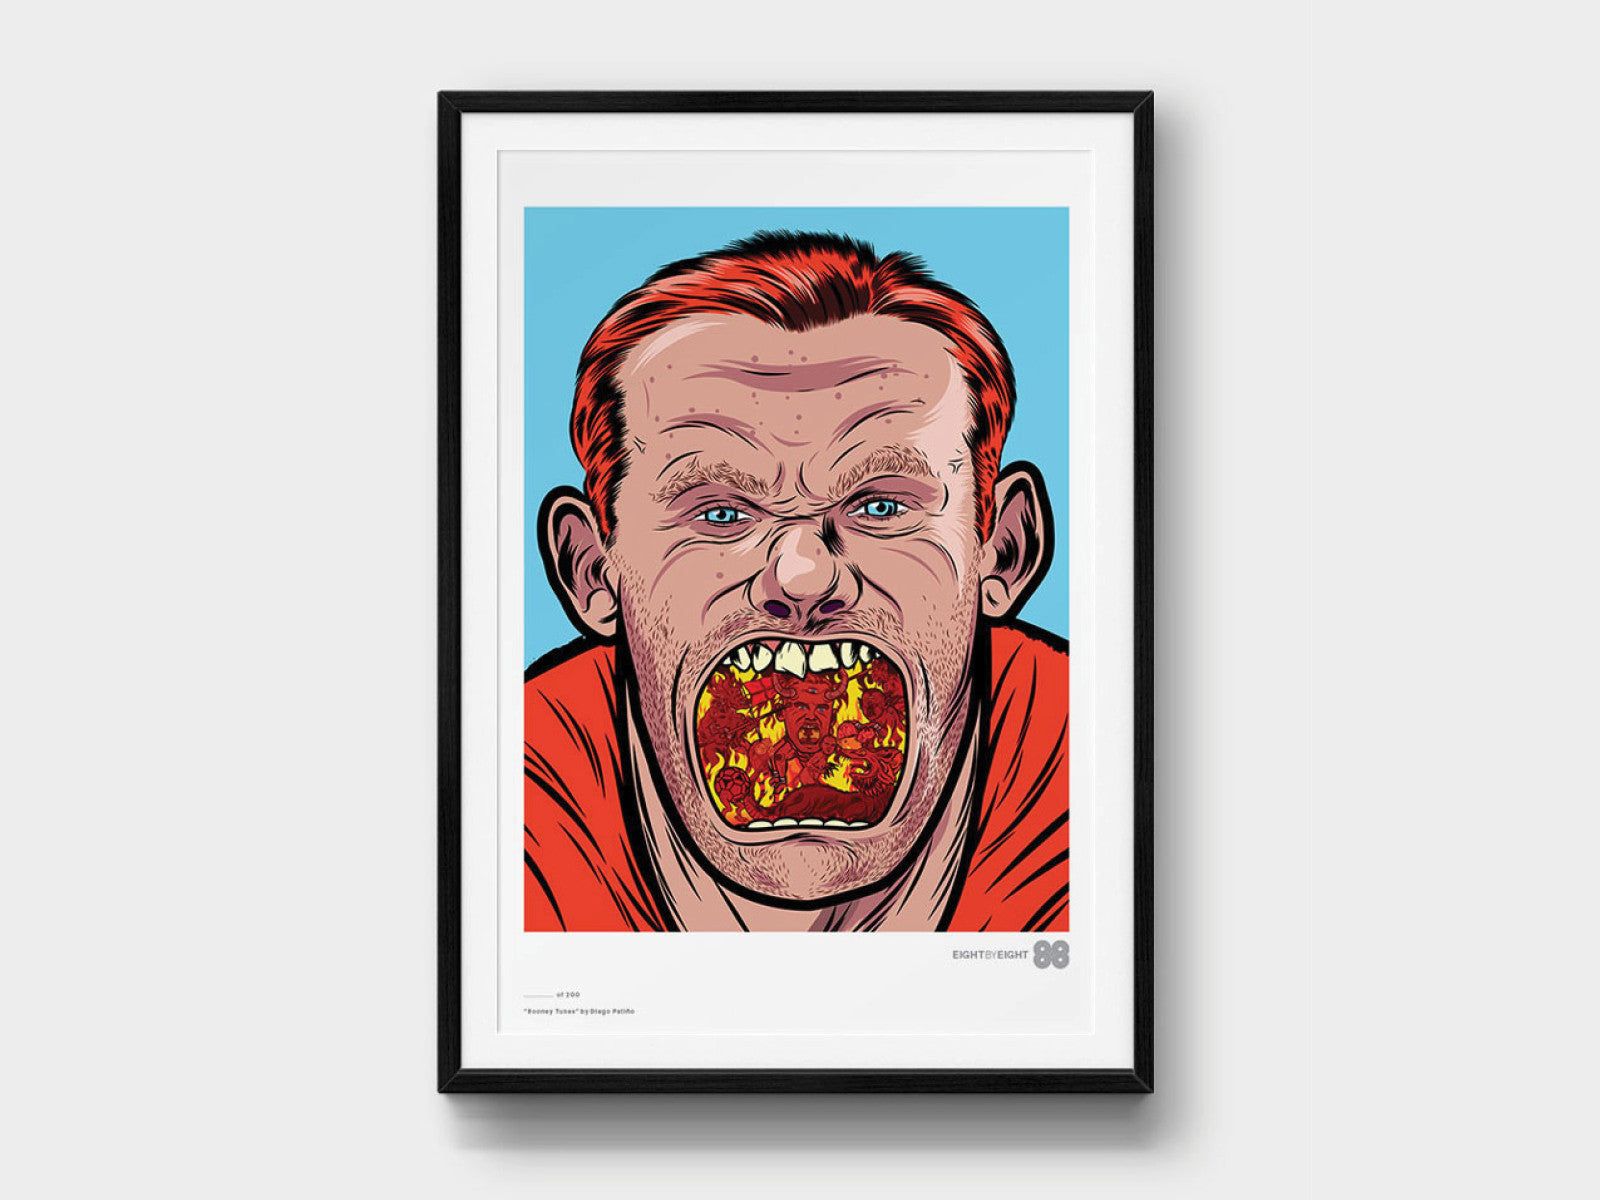 Limited-Edition Giclée Print: Wayne Rooney